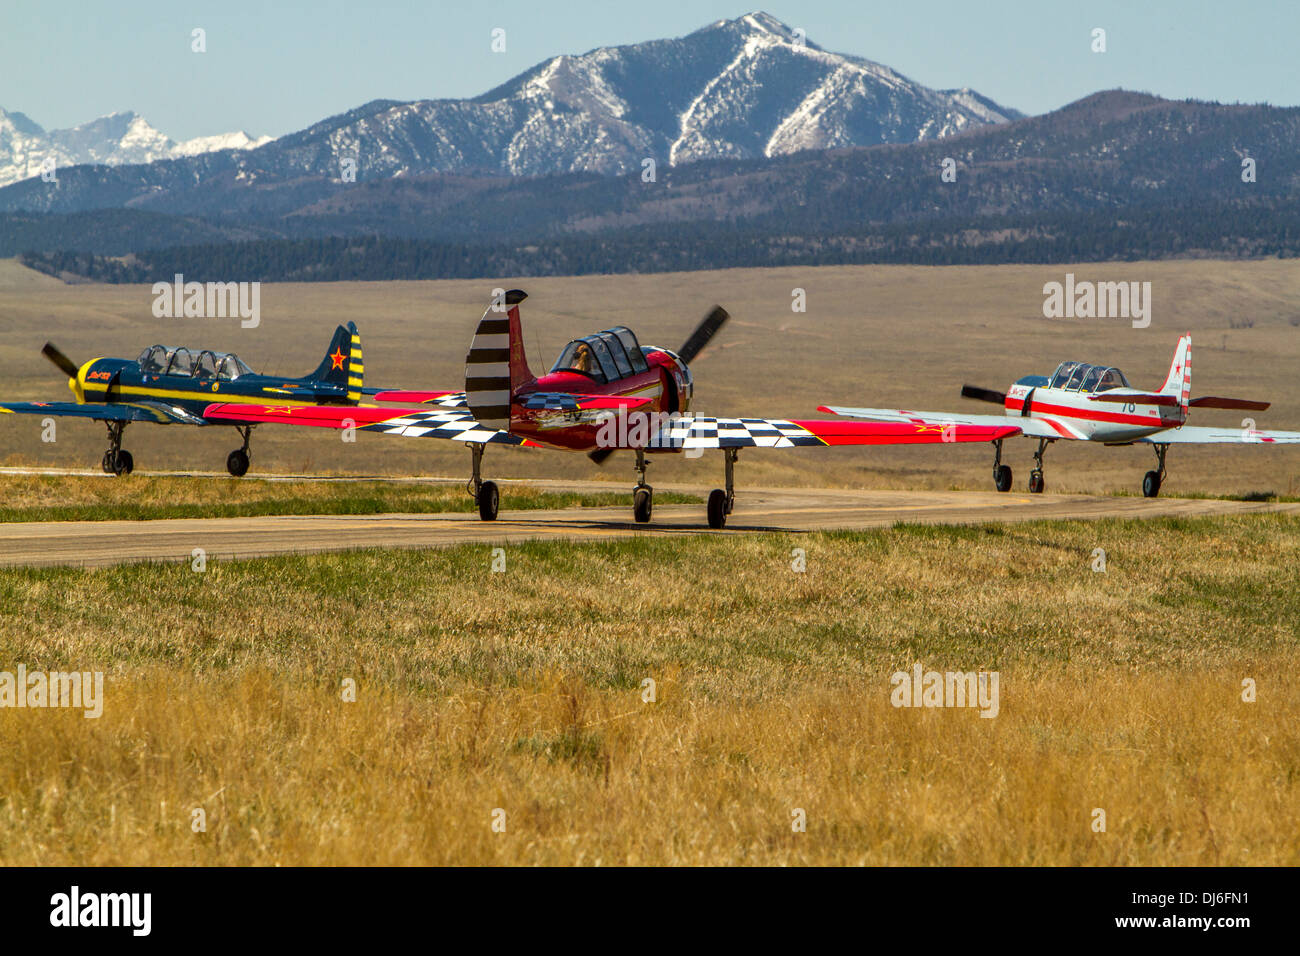 Unique Airplanes in the Mountains. - Stock Image